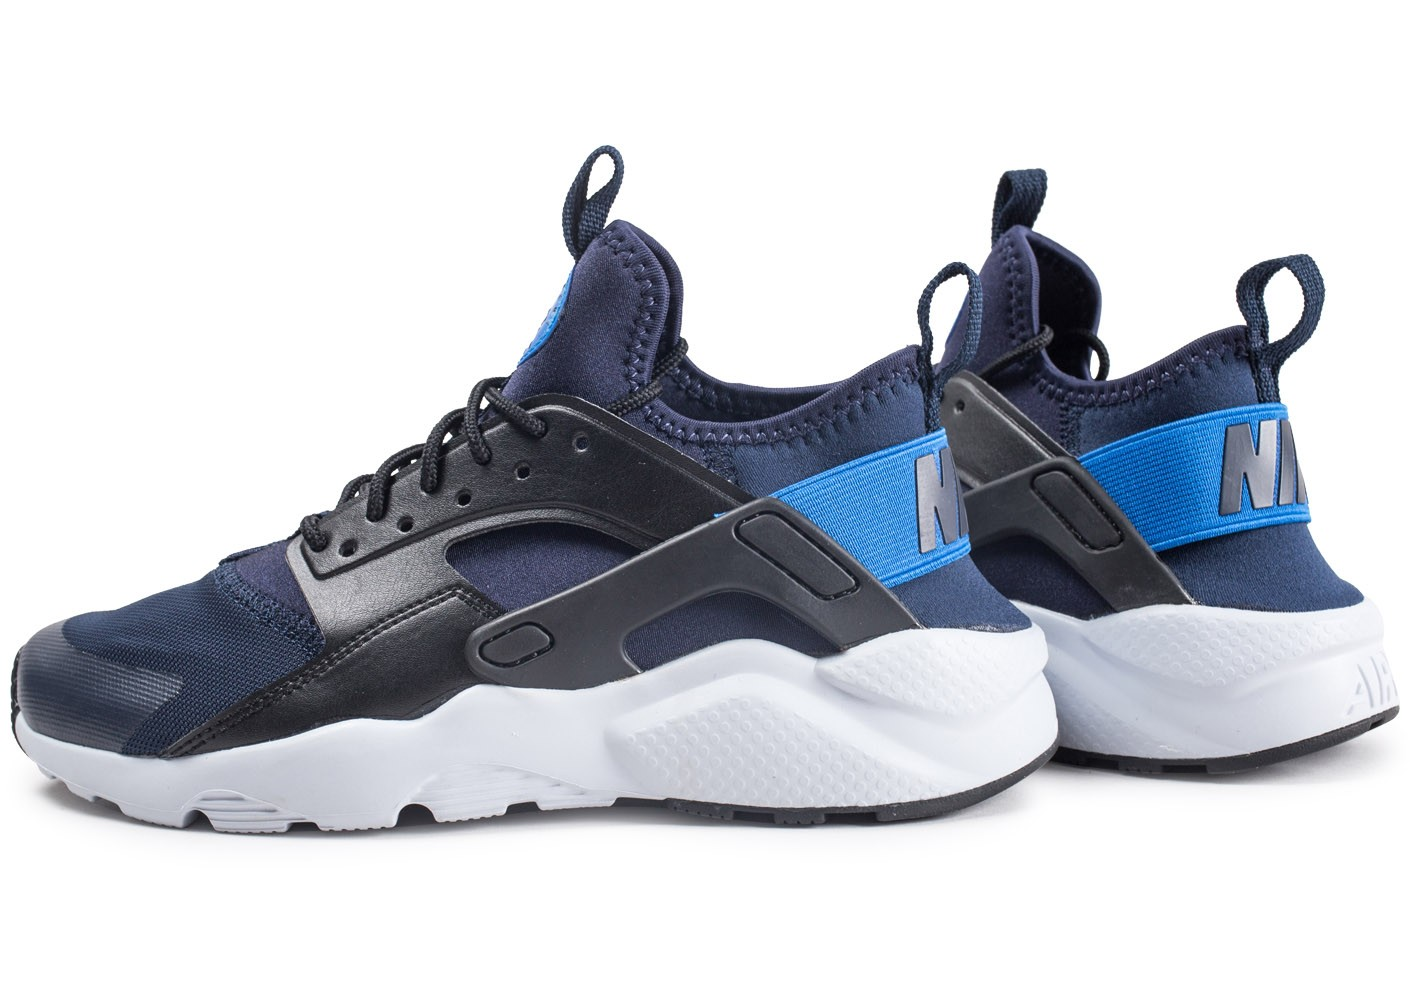 check out 7de6e 656ca Air Enfant Nike Chaussures Chausport Huarache Ultra Run Junior Bleue  5cS34AjRqL